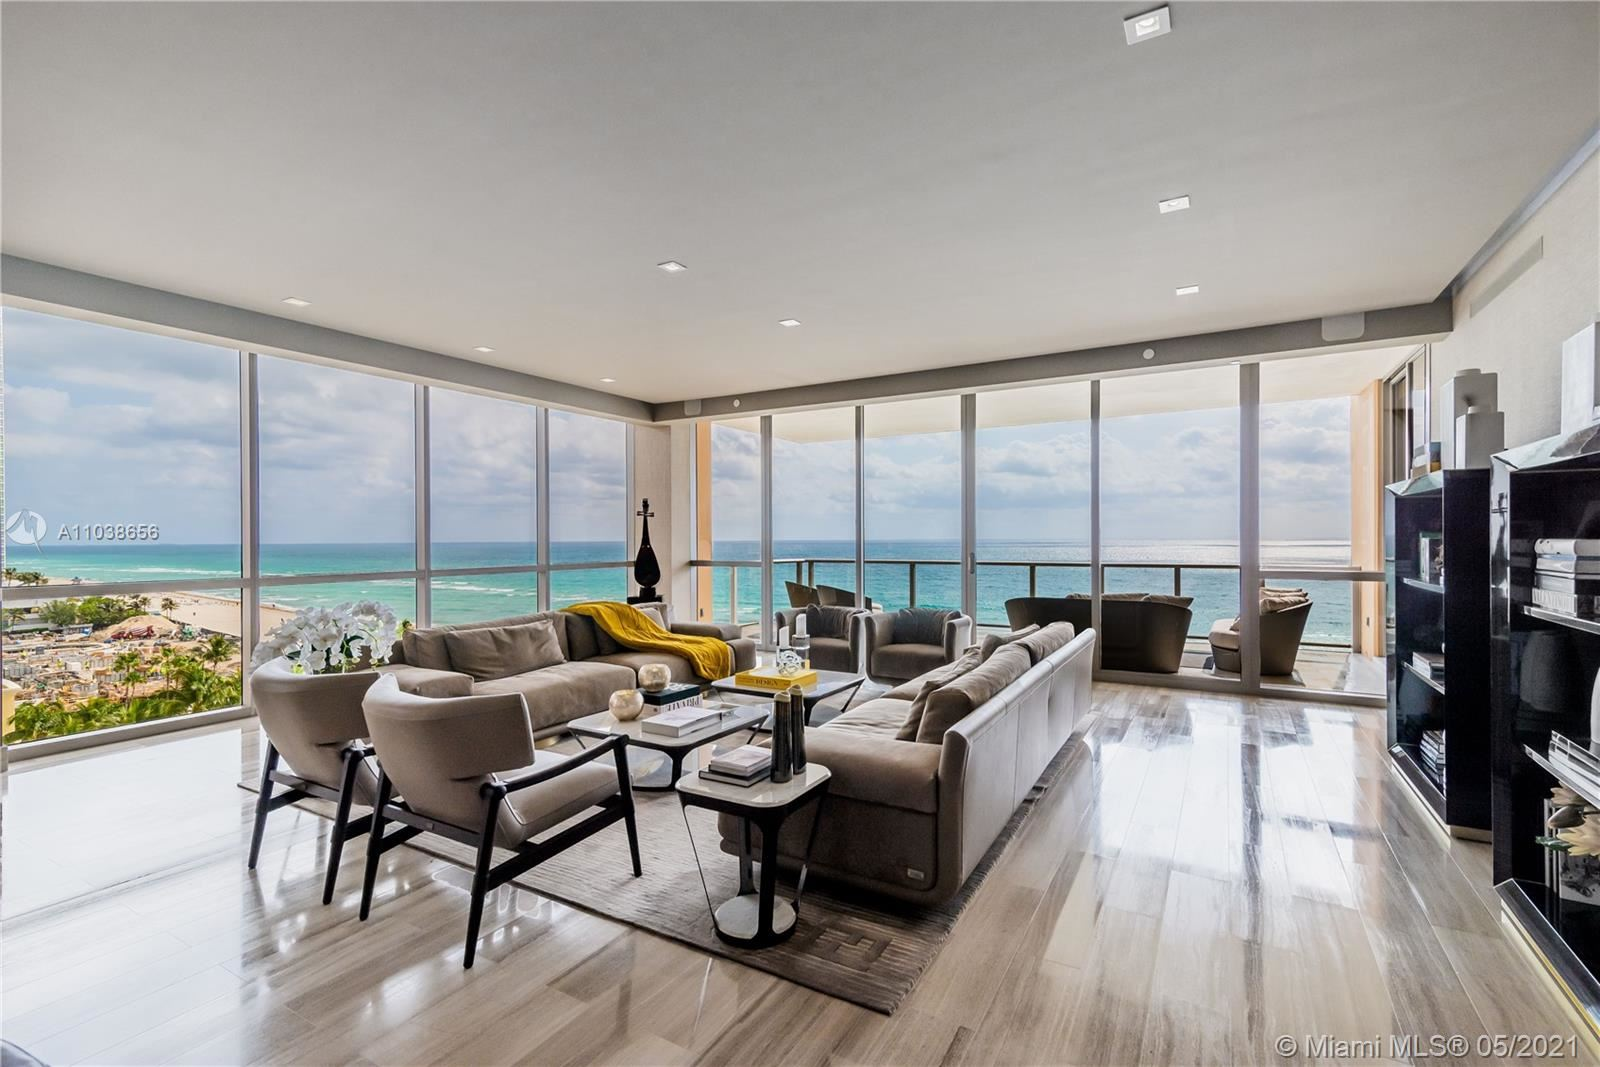 17749 Collins Ave #701, Sunny Isles, FL 33160 - #: A11038656